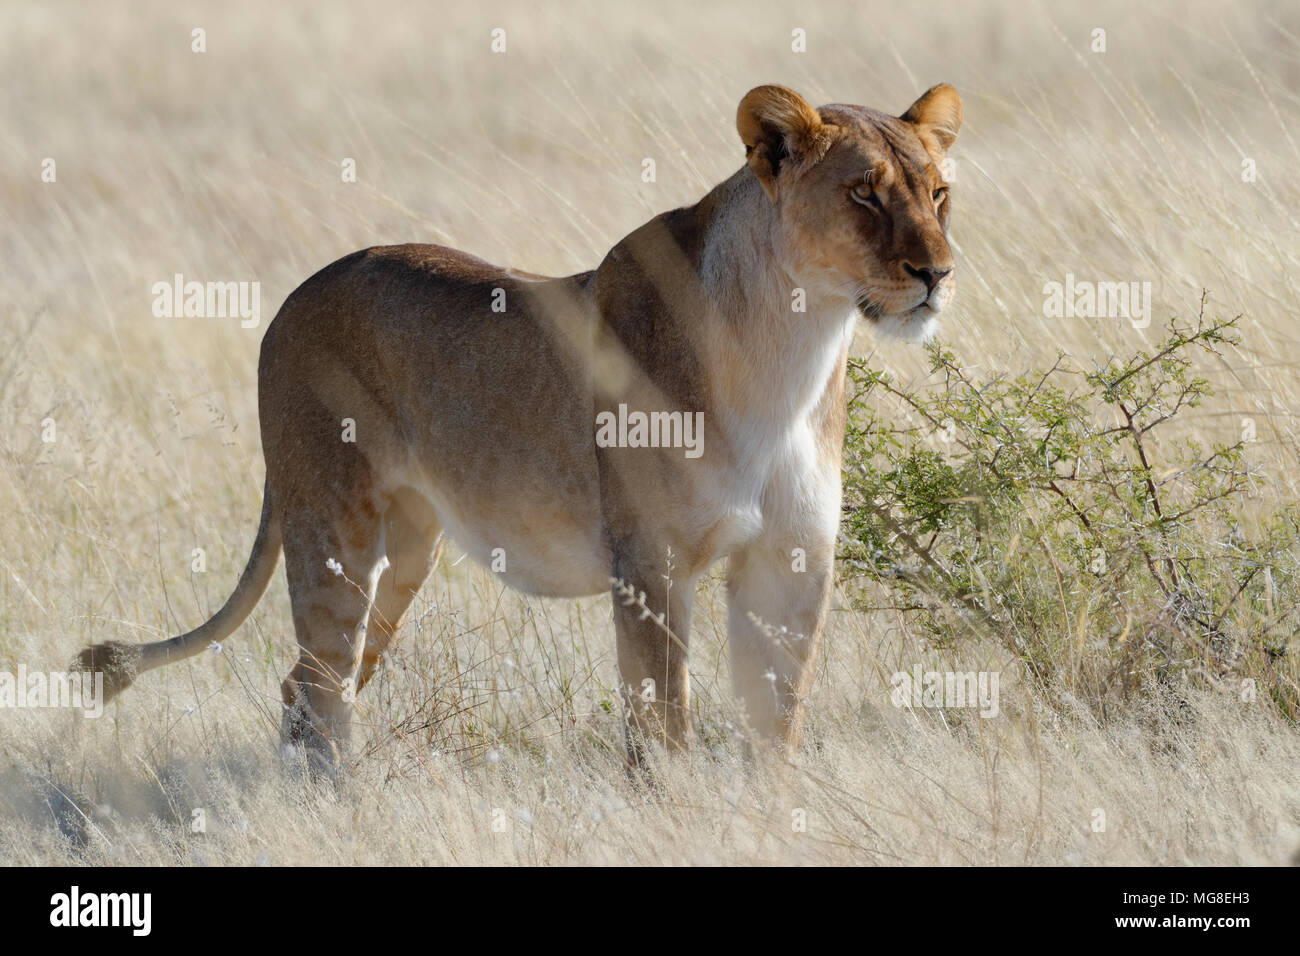 Lioness (Panthera leo) standing in dry grass, alert, watching out, Etosha National Park, Namibia - Stock Image